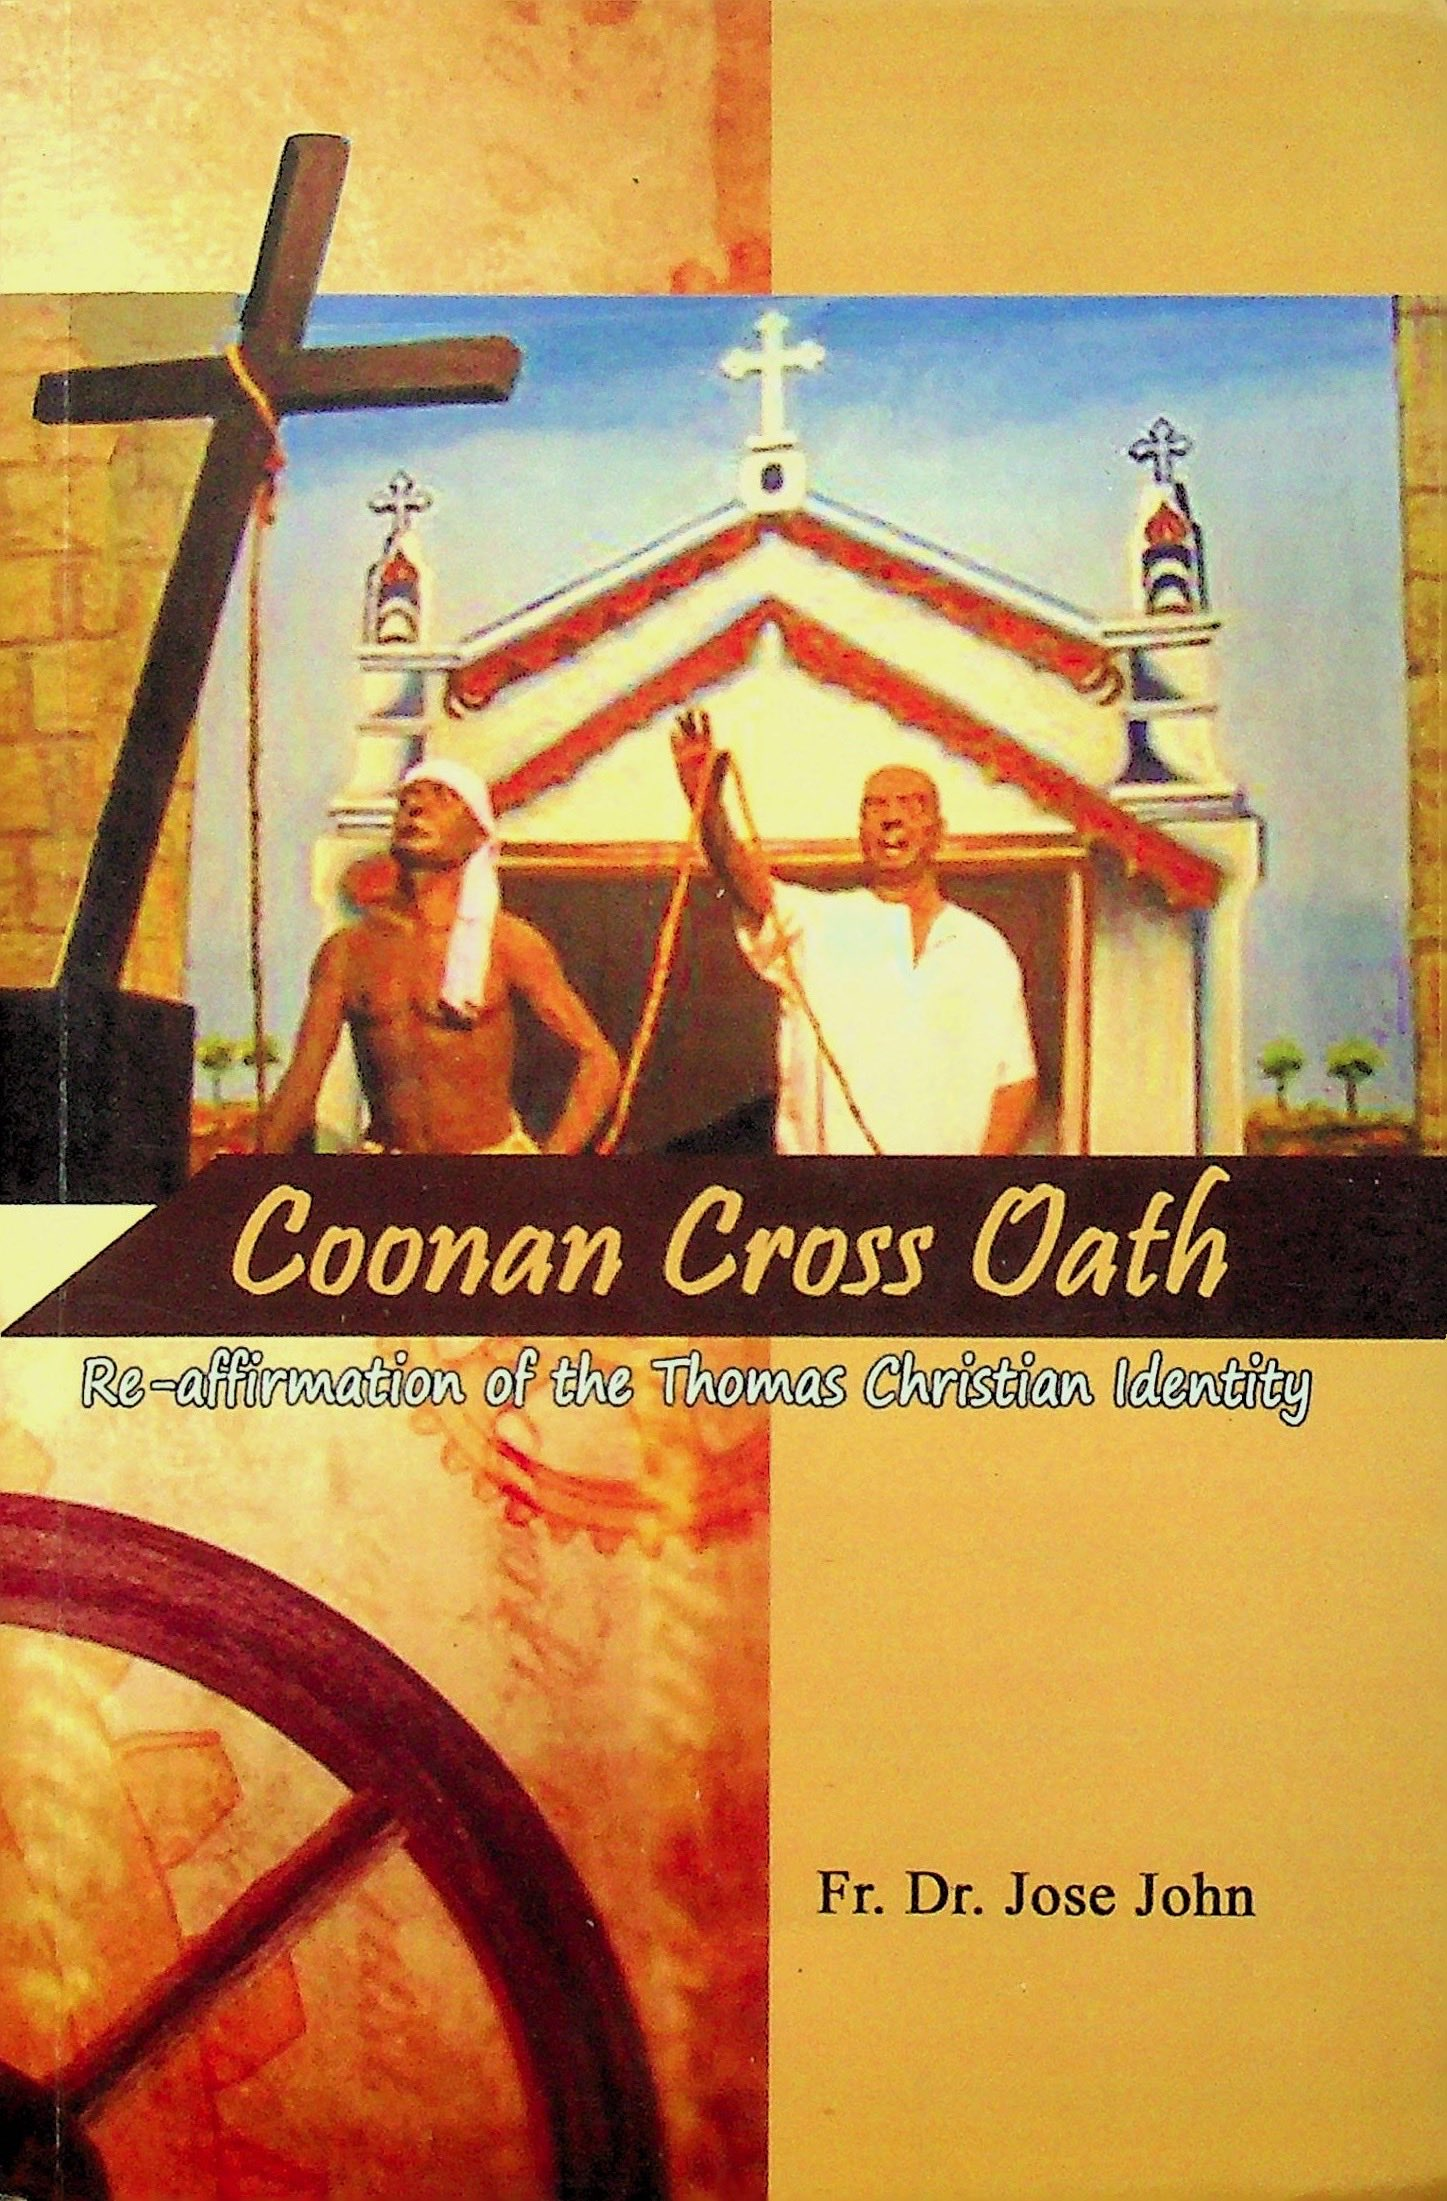 Coonan Cross Oath, Reaffirmation of the Thomas Christian Identity